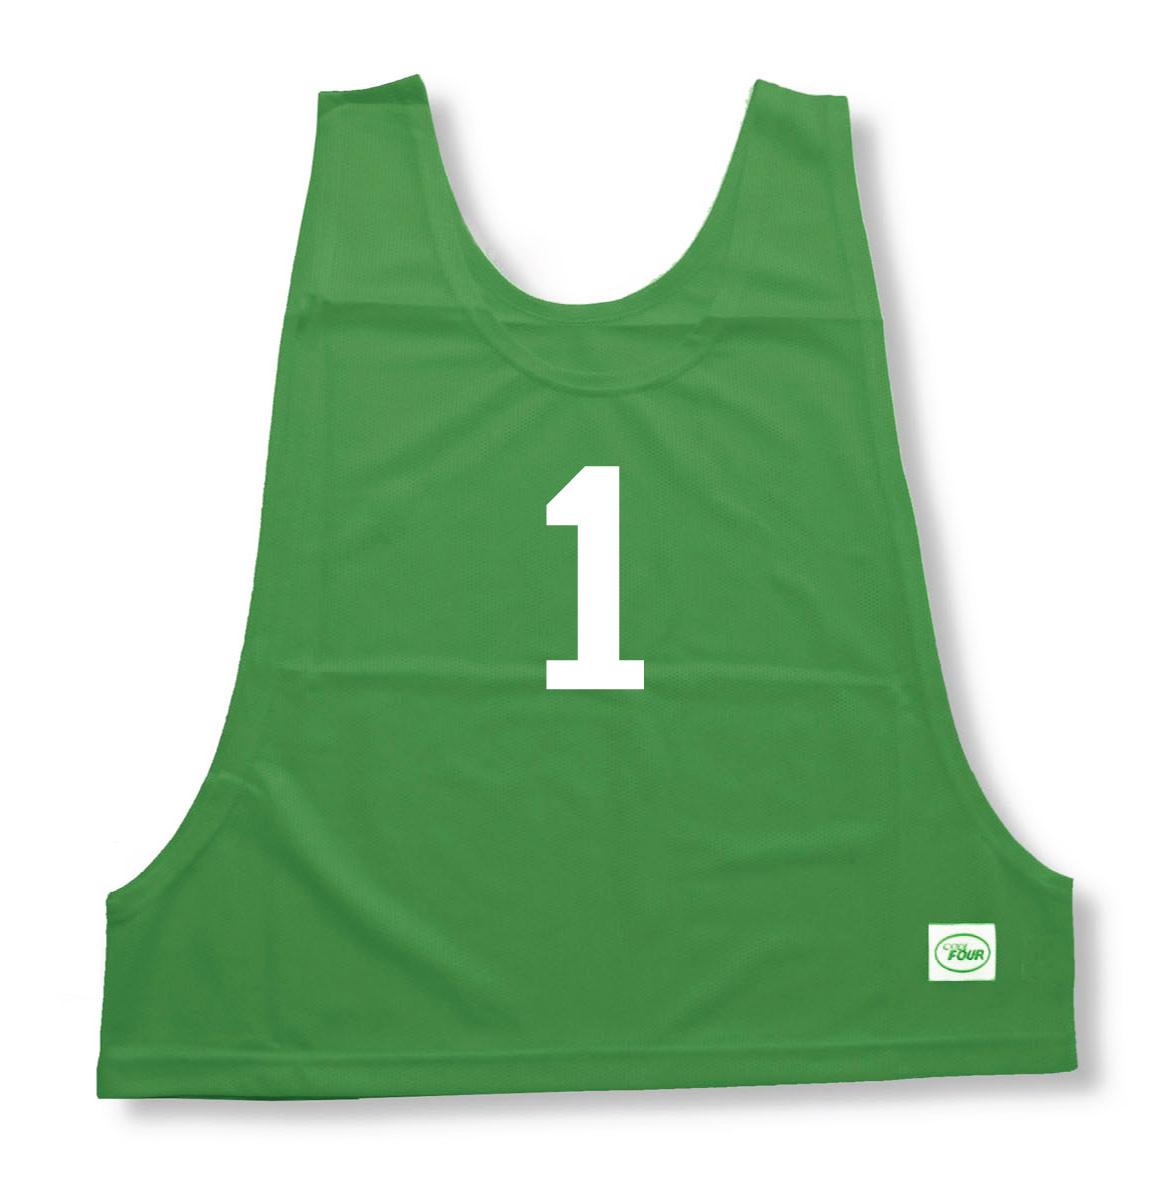 Numbered practice pinny in kelly by Code Four Athletics